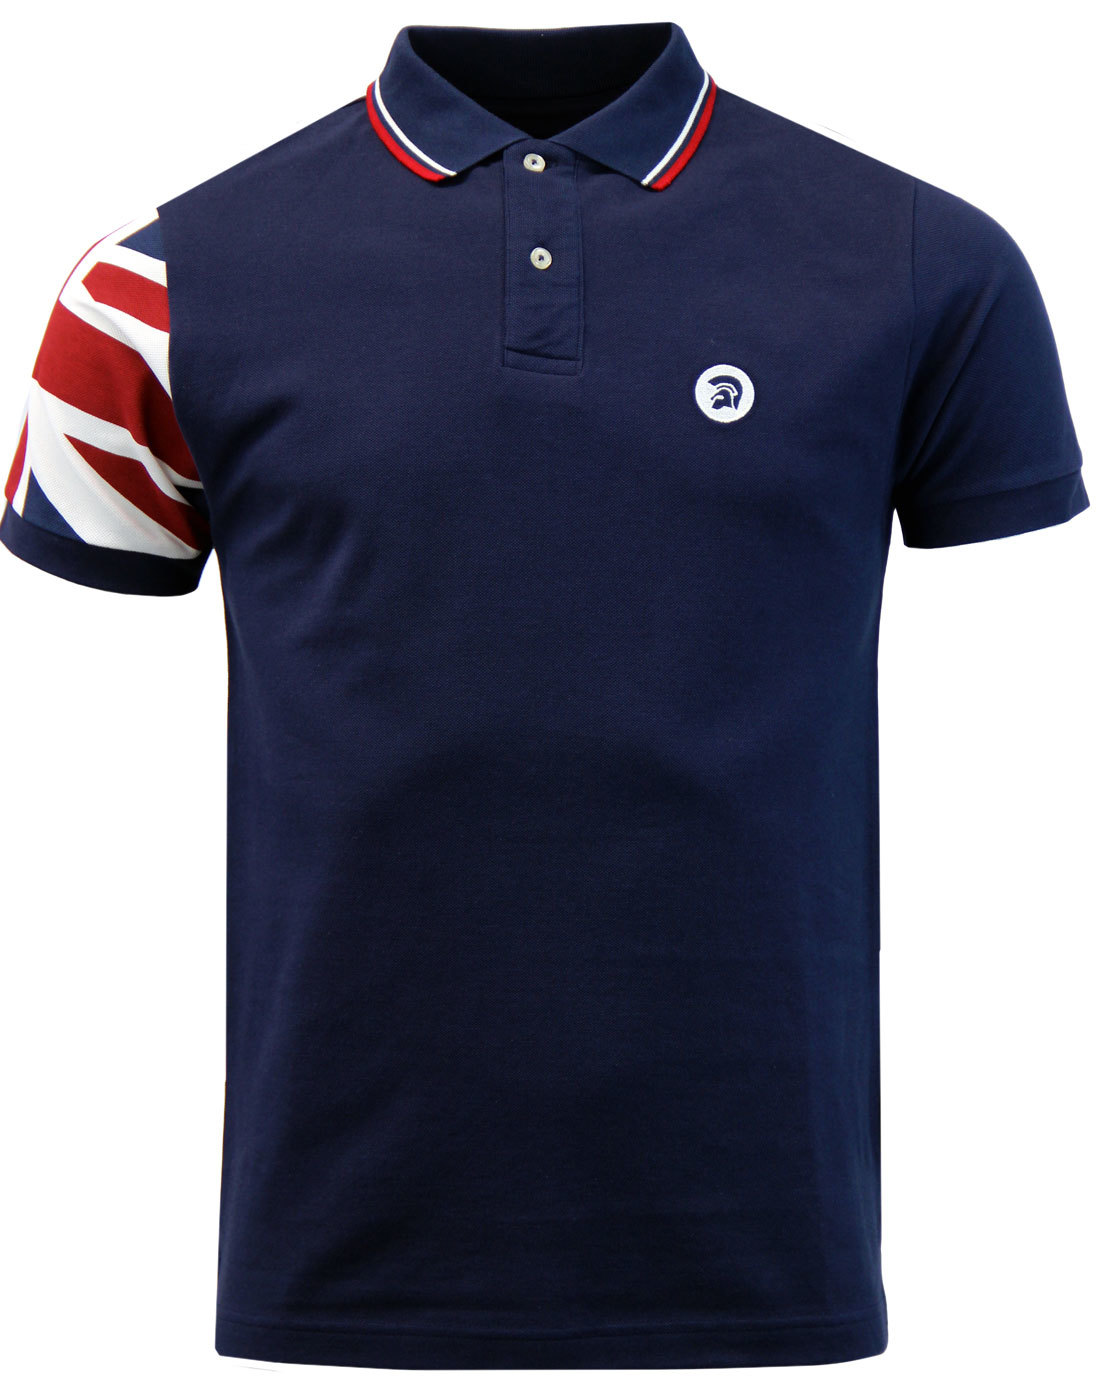 TROJAN RECORDS Retro Mod Union Jack Sleeve Polo